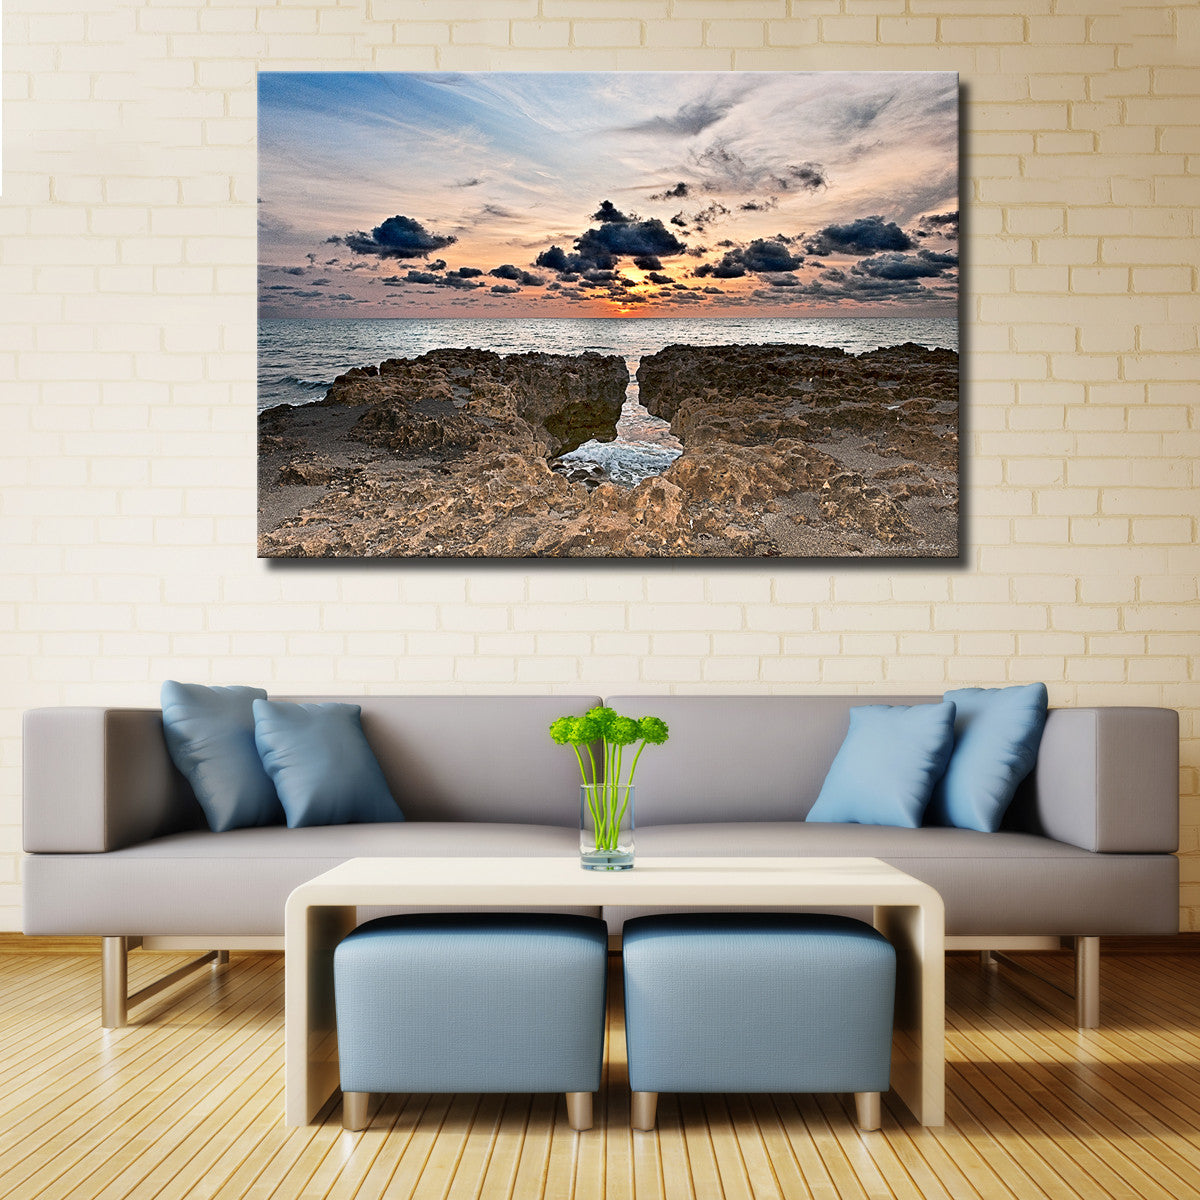 Bruce Bain 'Sunset Rock II' Canvas Wall Art